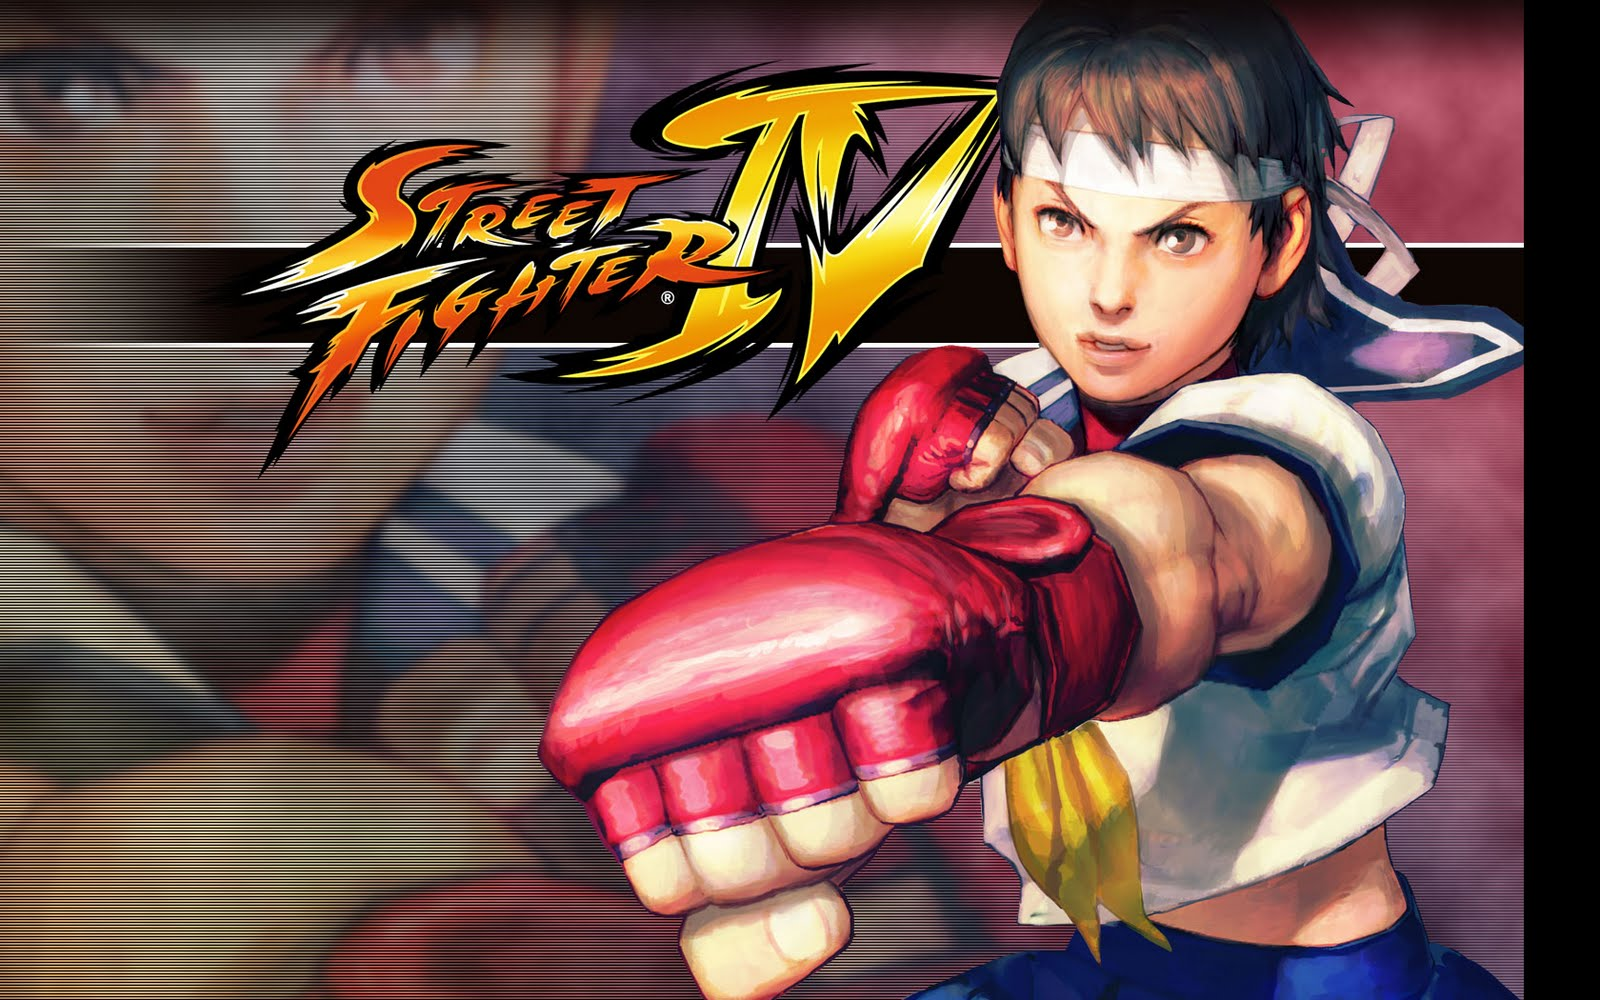 Blogger For Wallpaper: street fighter iv hd